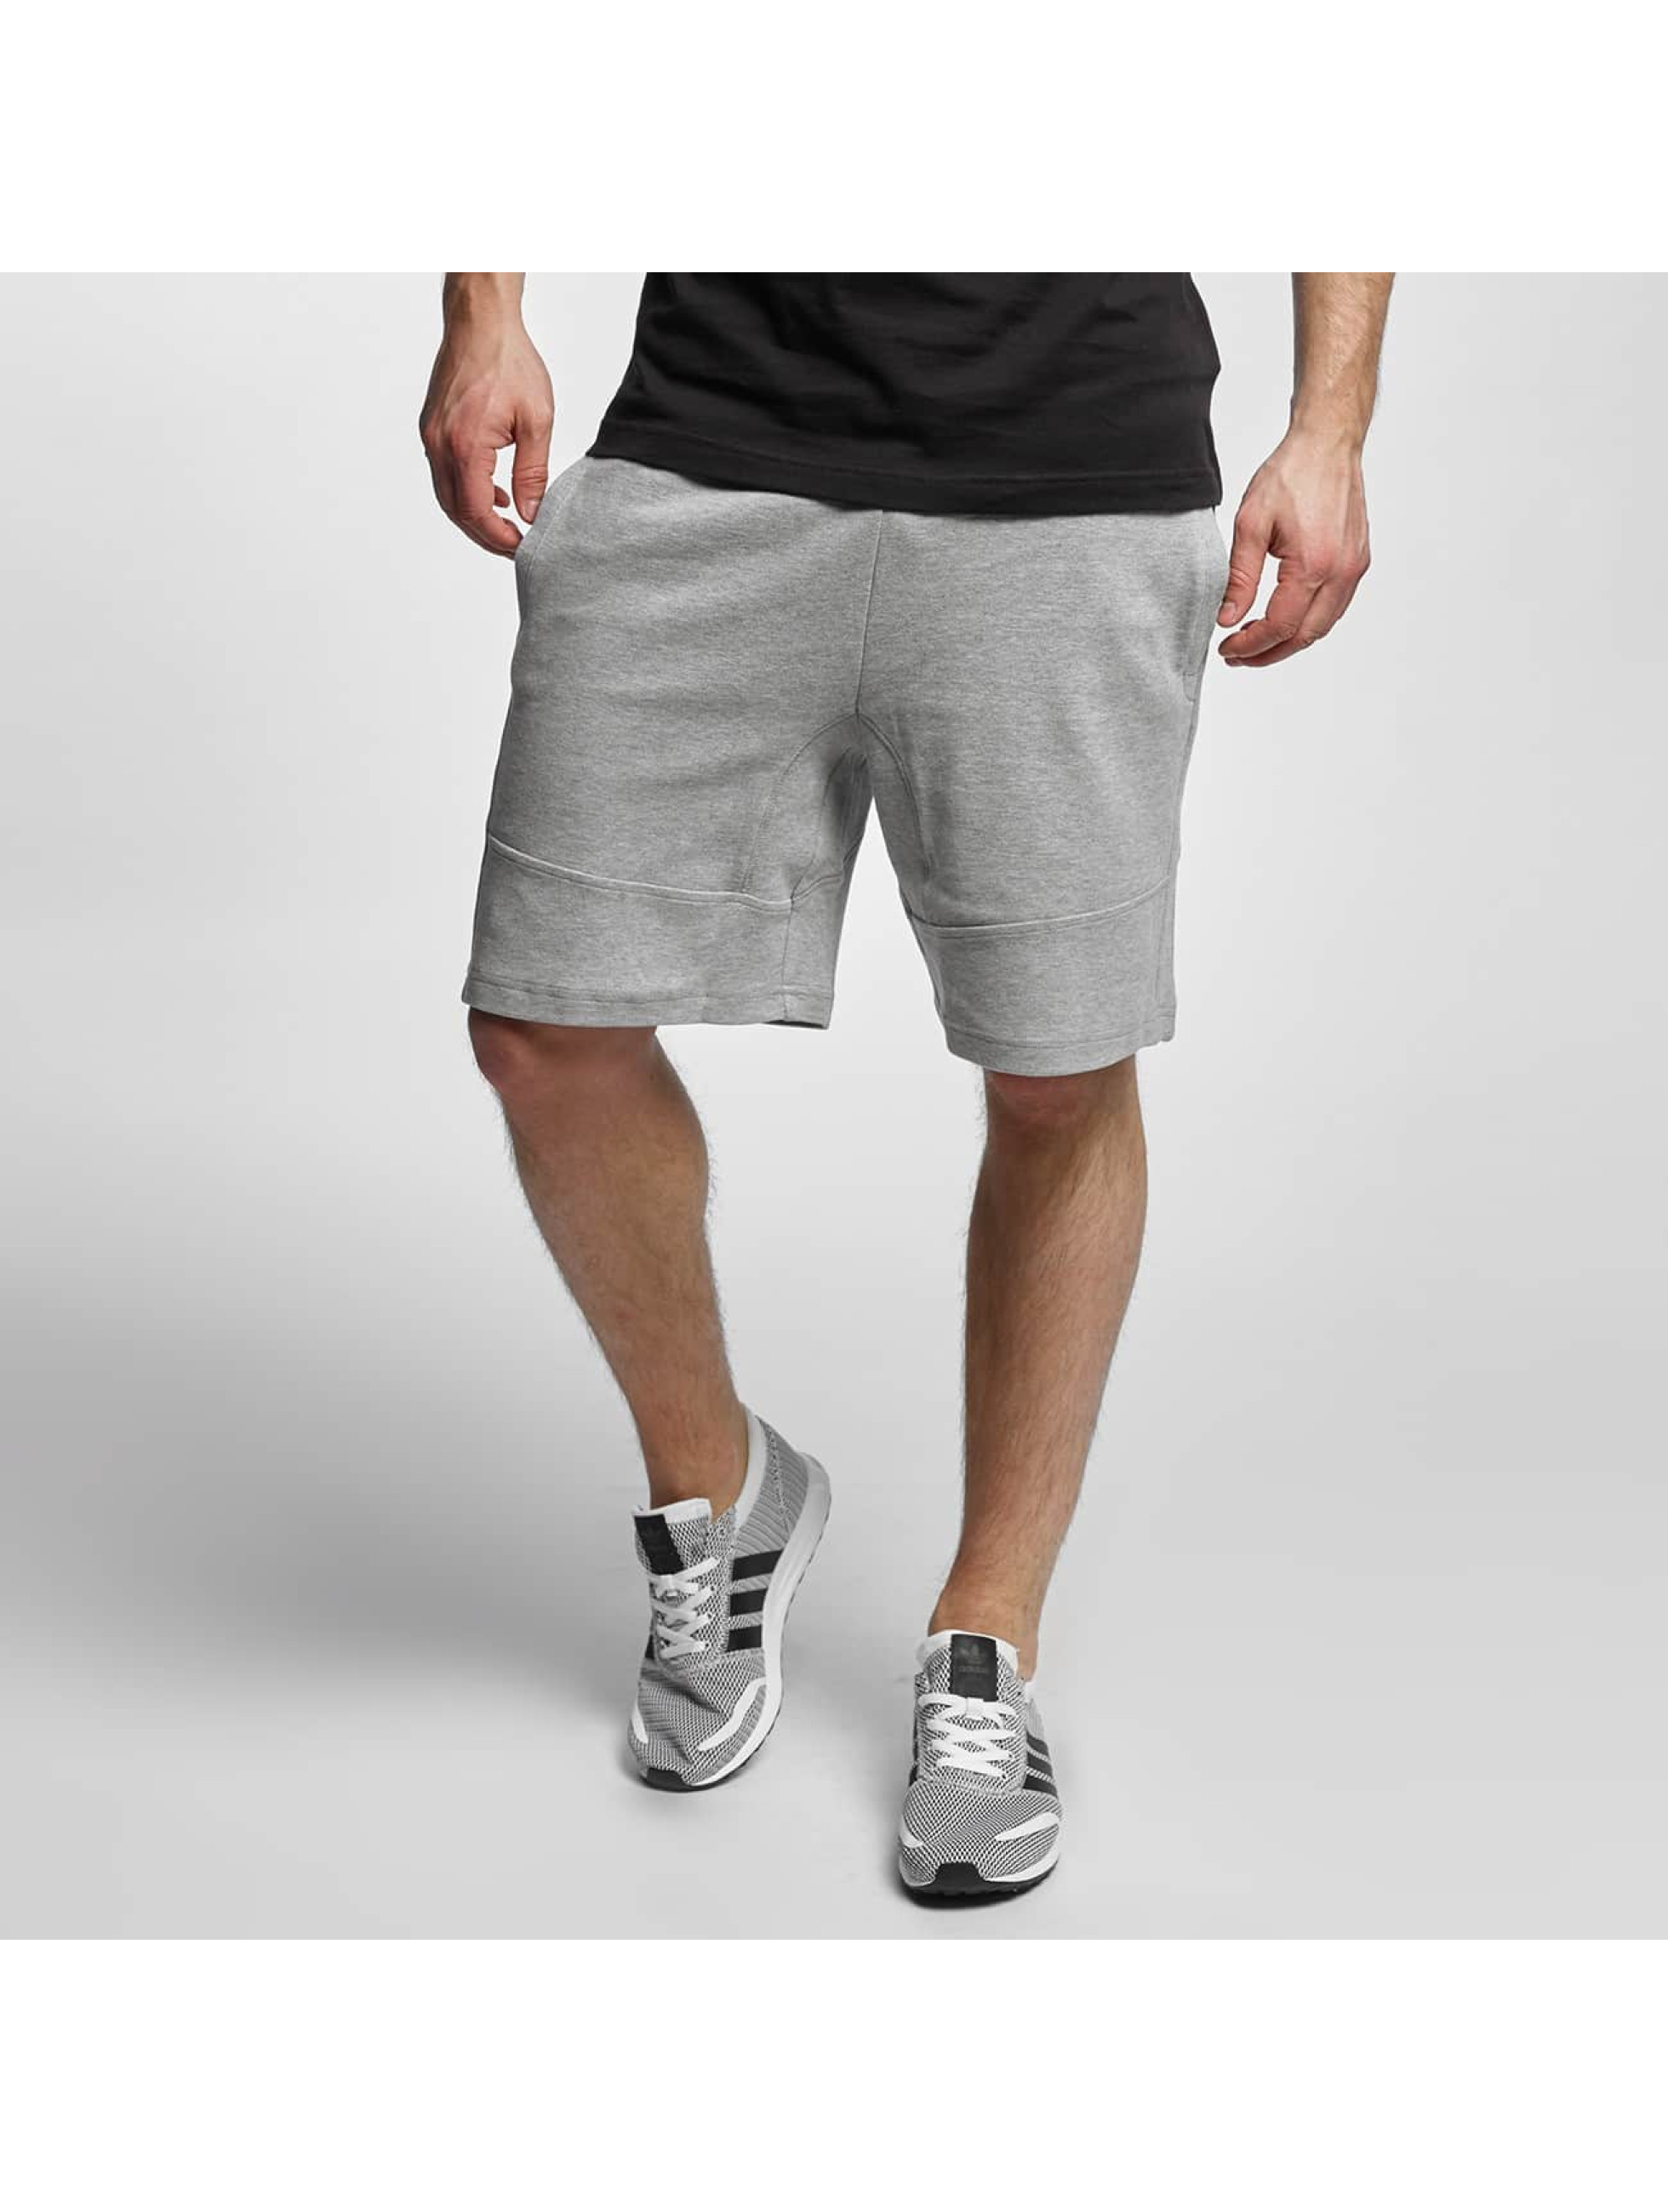 Urban Classics Shorts Interlock grau